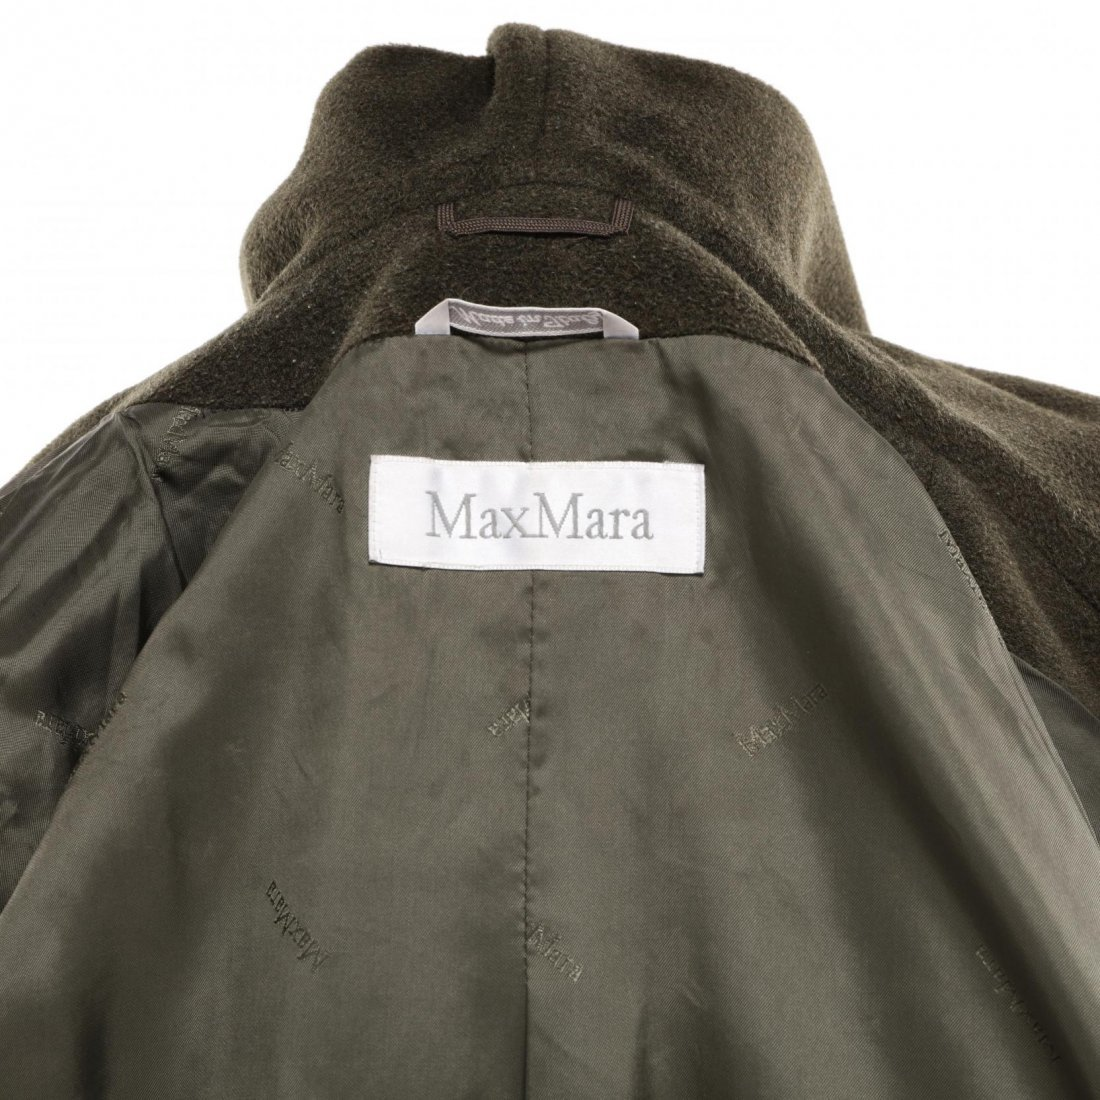 Double Face Hooded Coat, Max Mara - 3